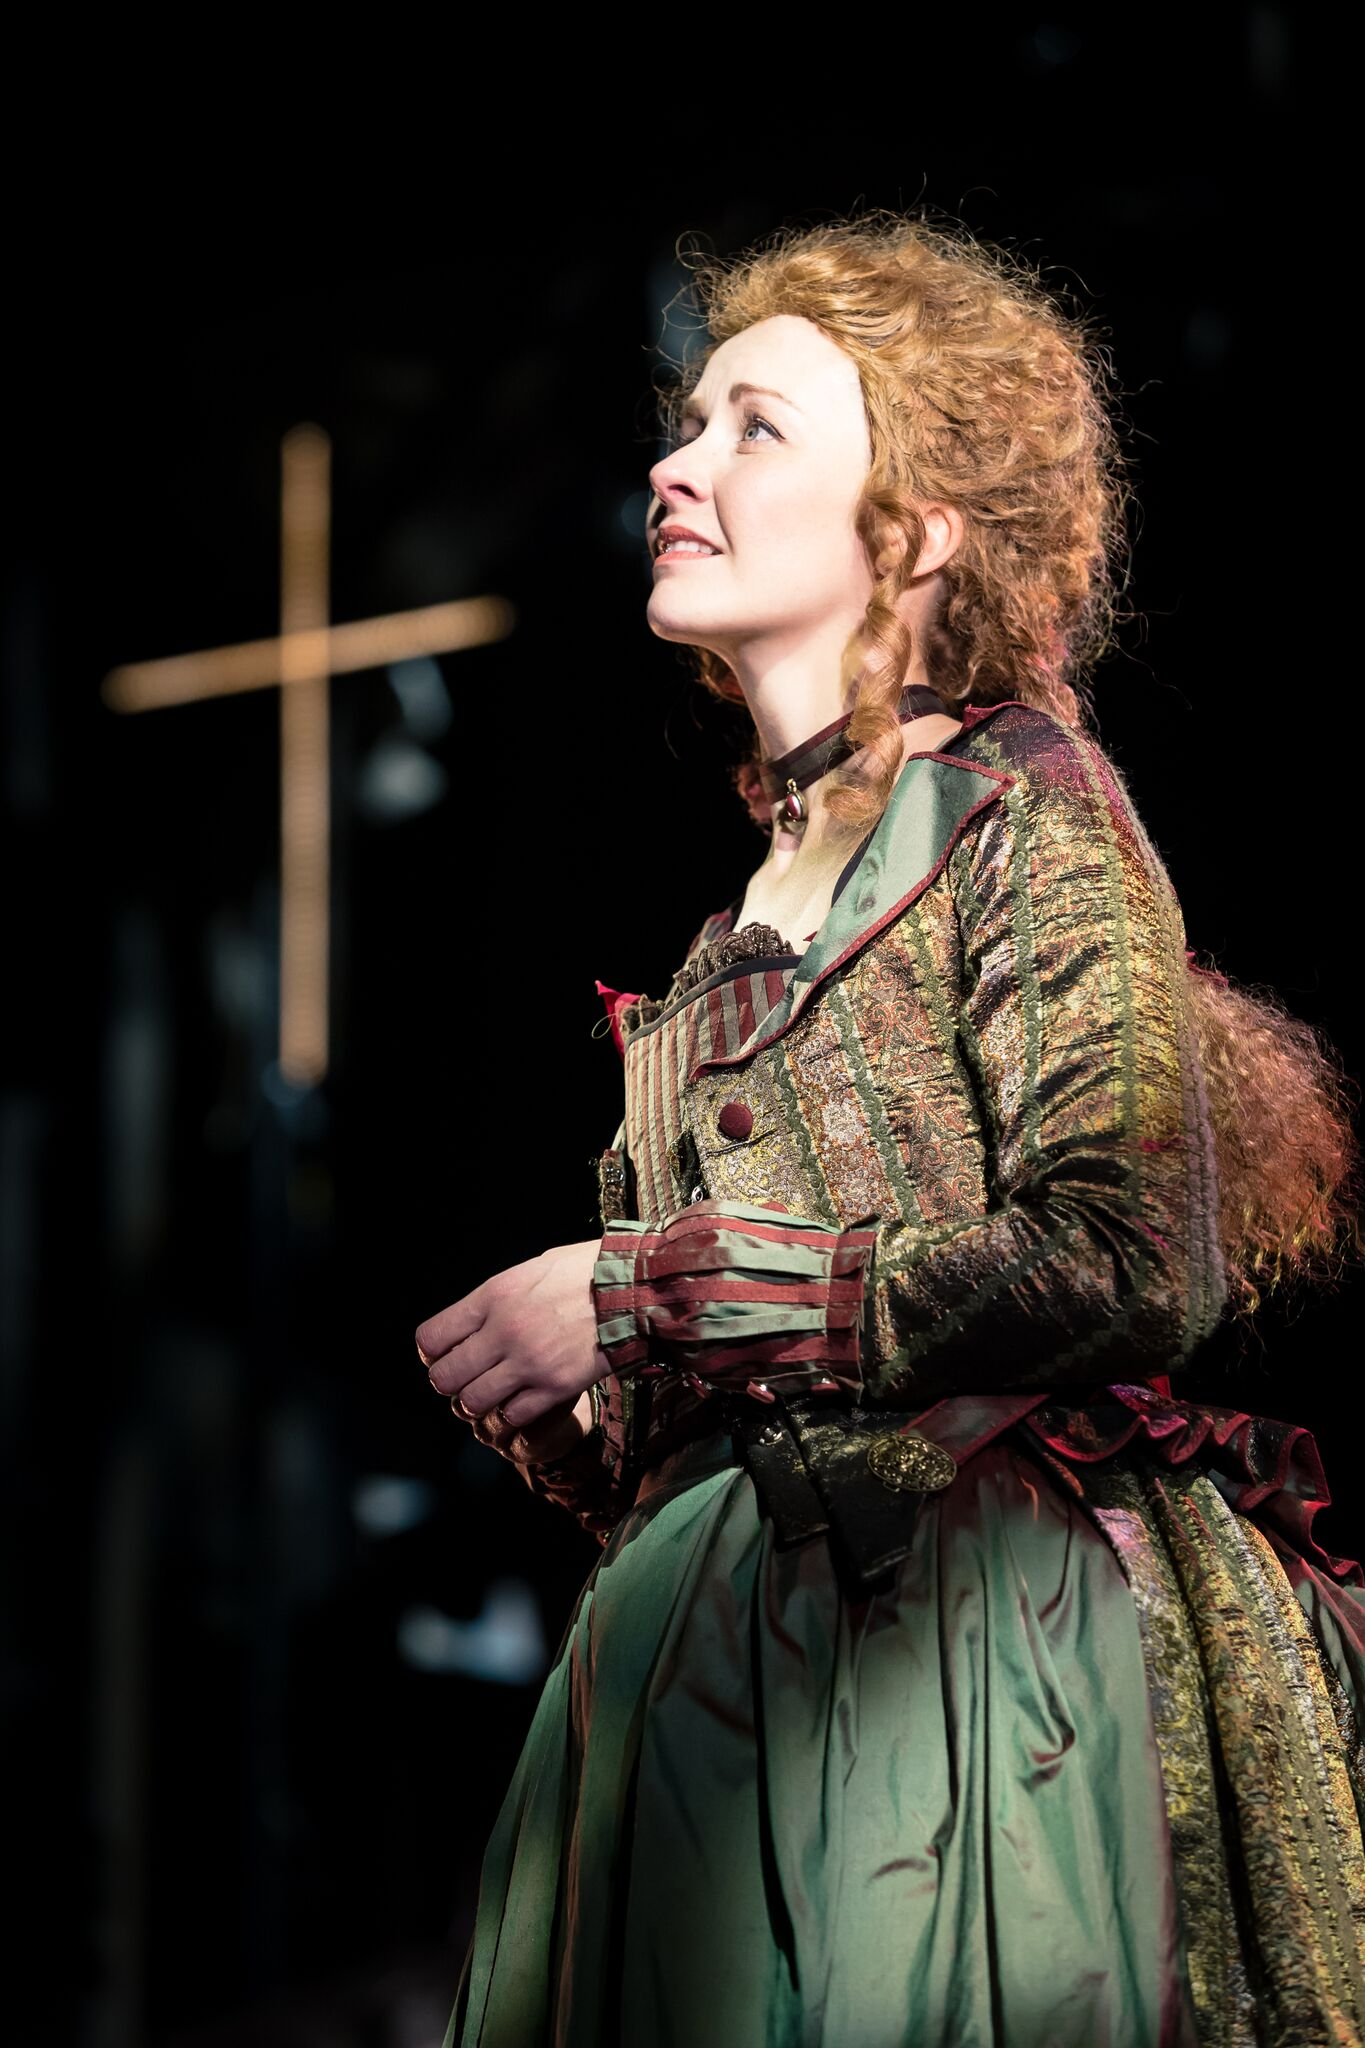 Moll Flanders (Eva-Jane-Willis) is stnading in a church in a green and gold coat looking up into the distance, wondering what she should do with her life.